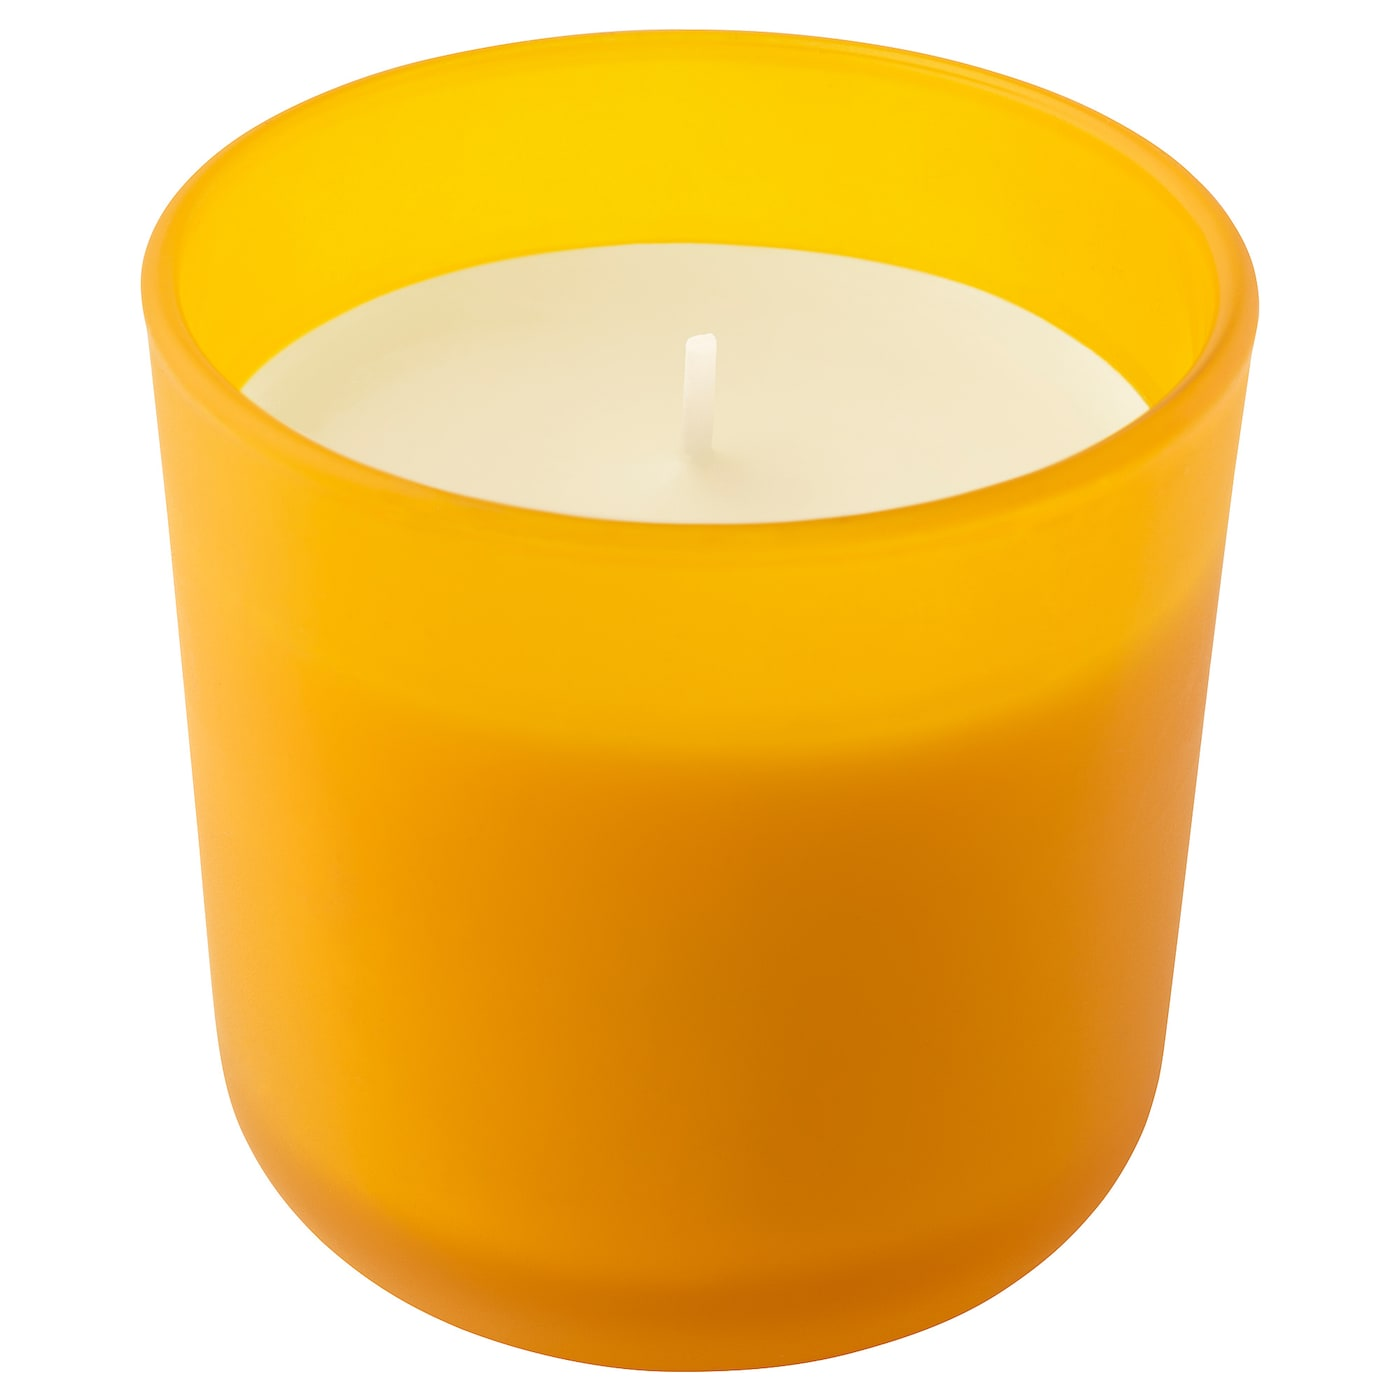 Ikea Sommar 2019 Scented Candle In Gl A Crisp Scent Of Lemon